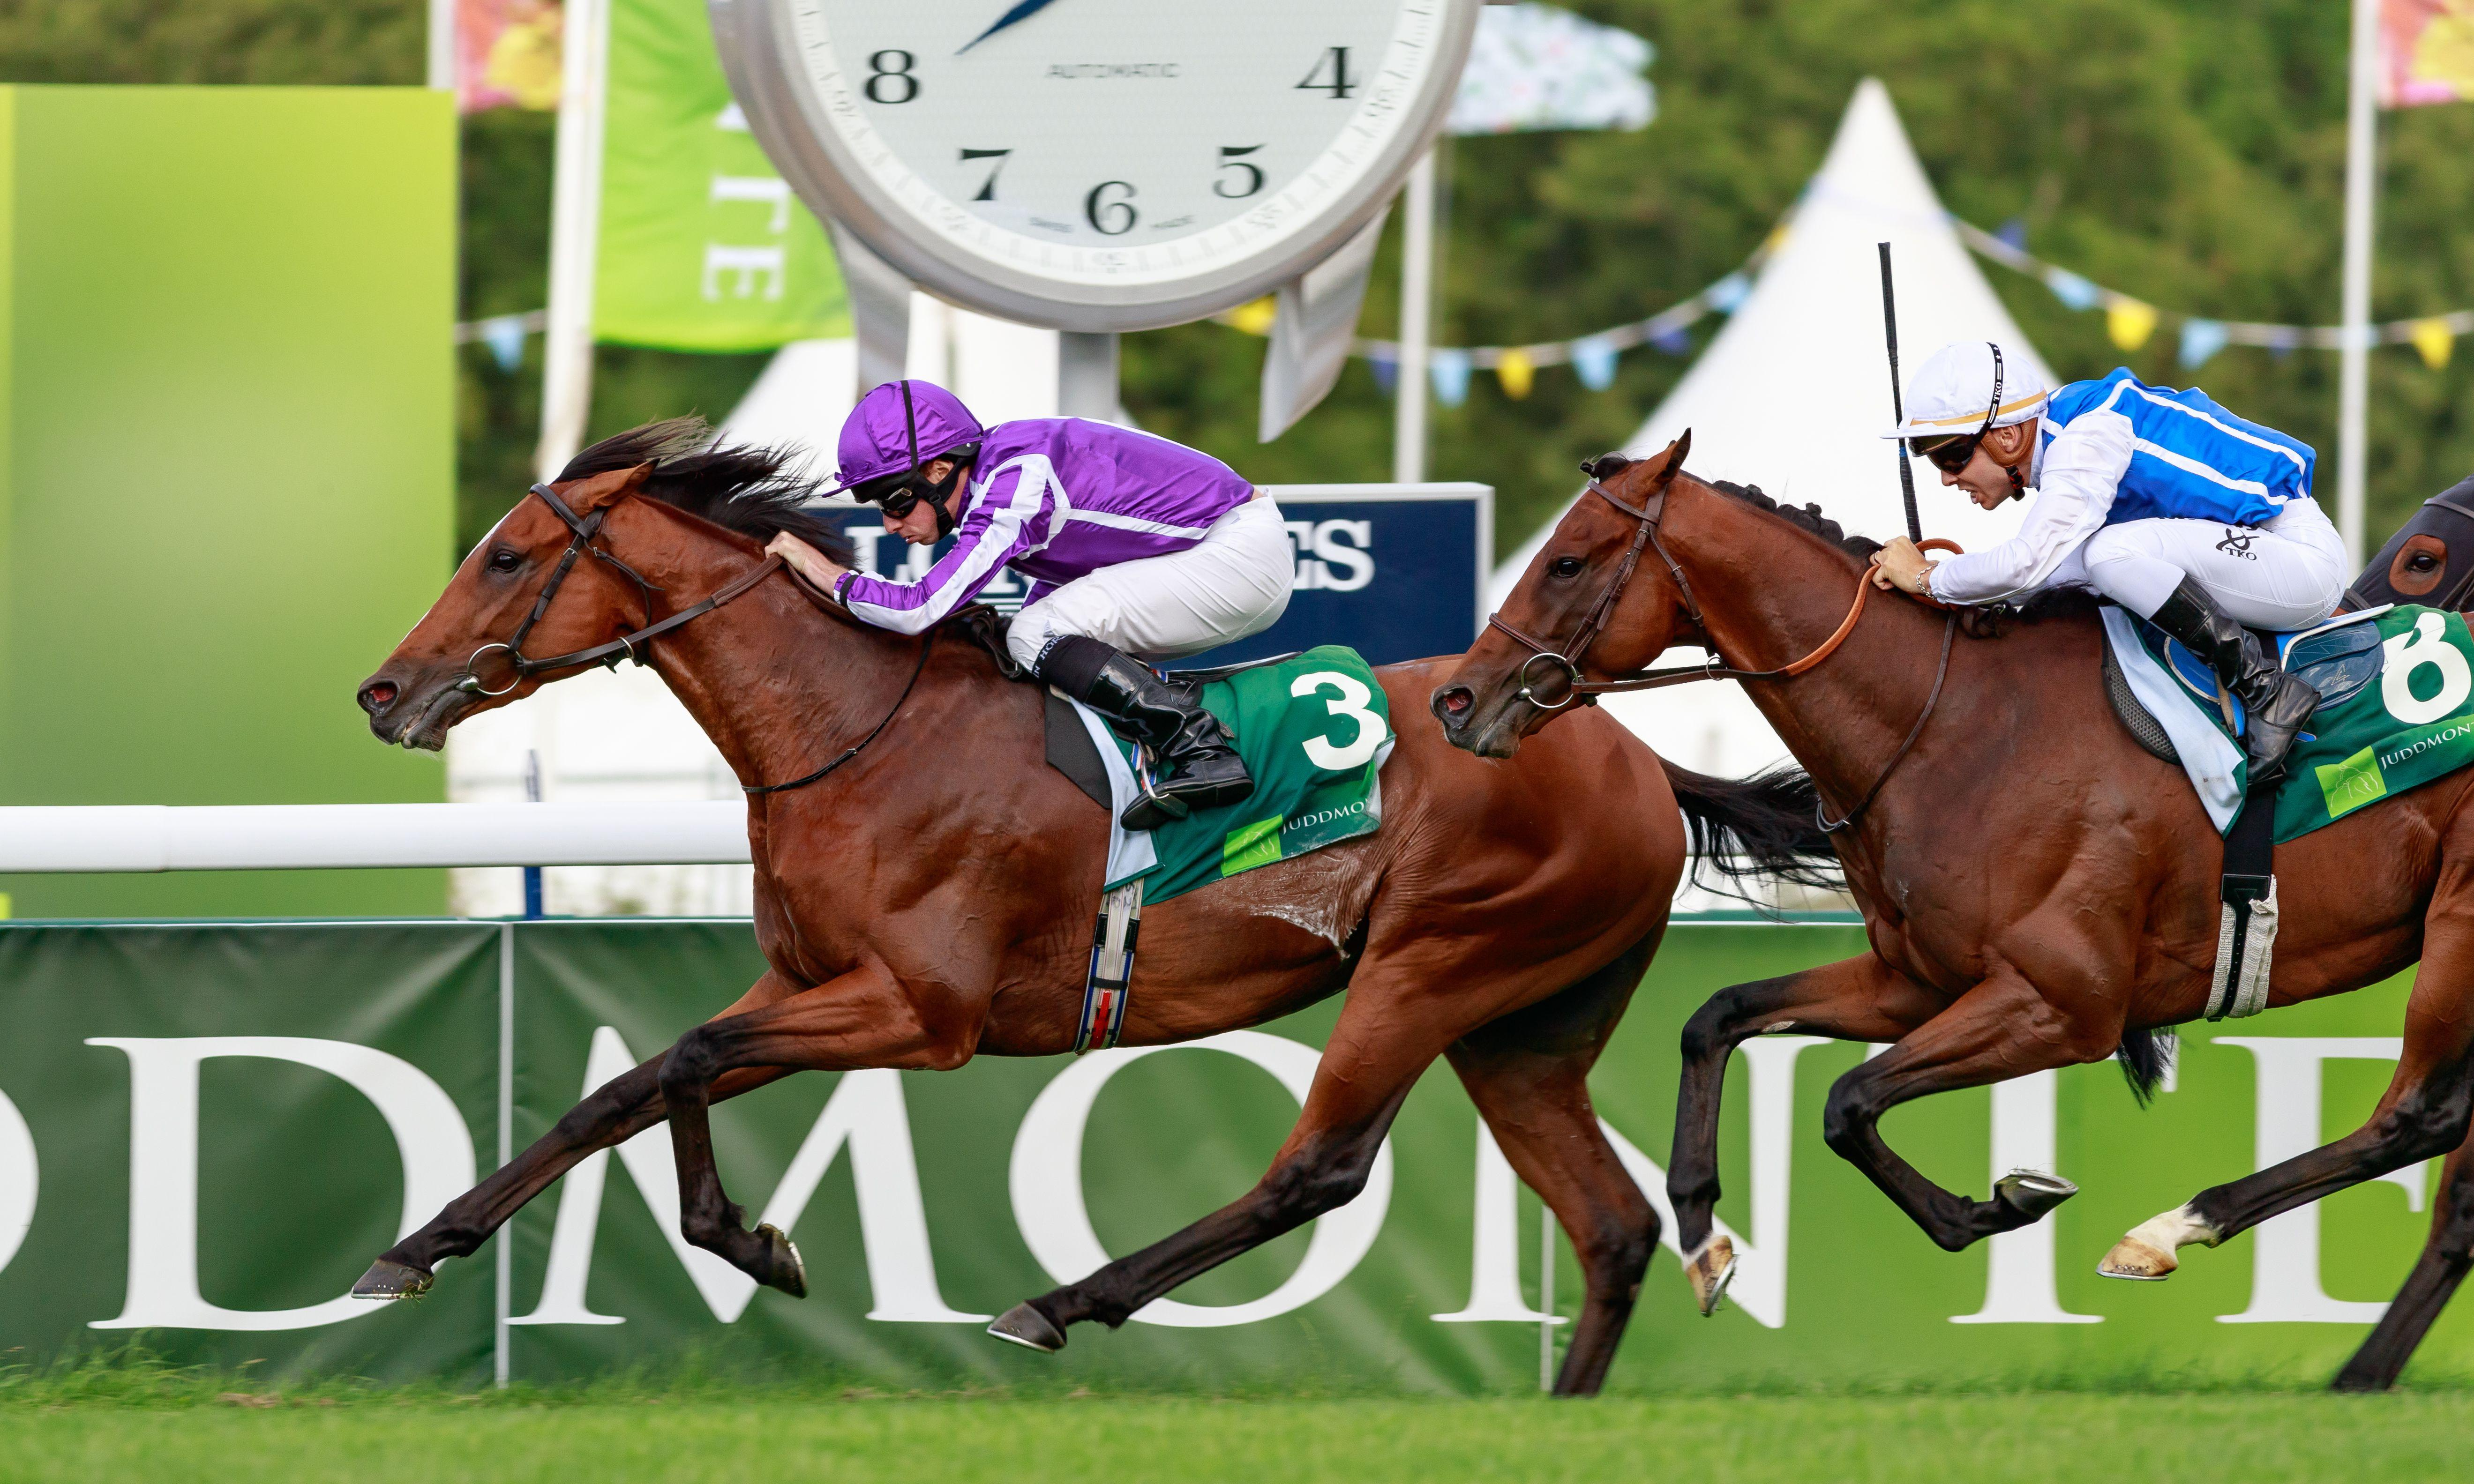 Japan earns first Group One win in Grand Prix de Paris on Bastille Day